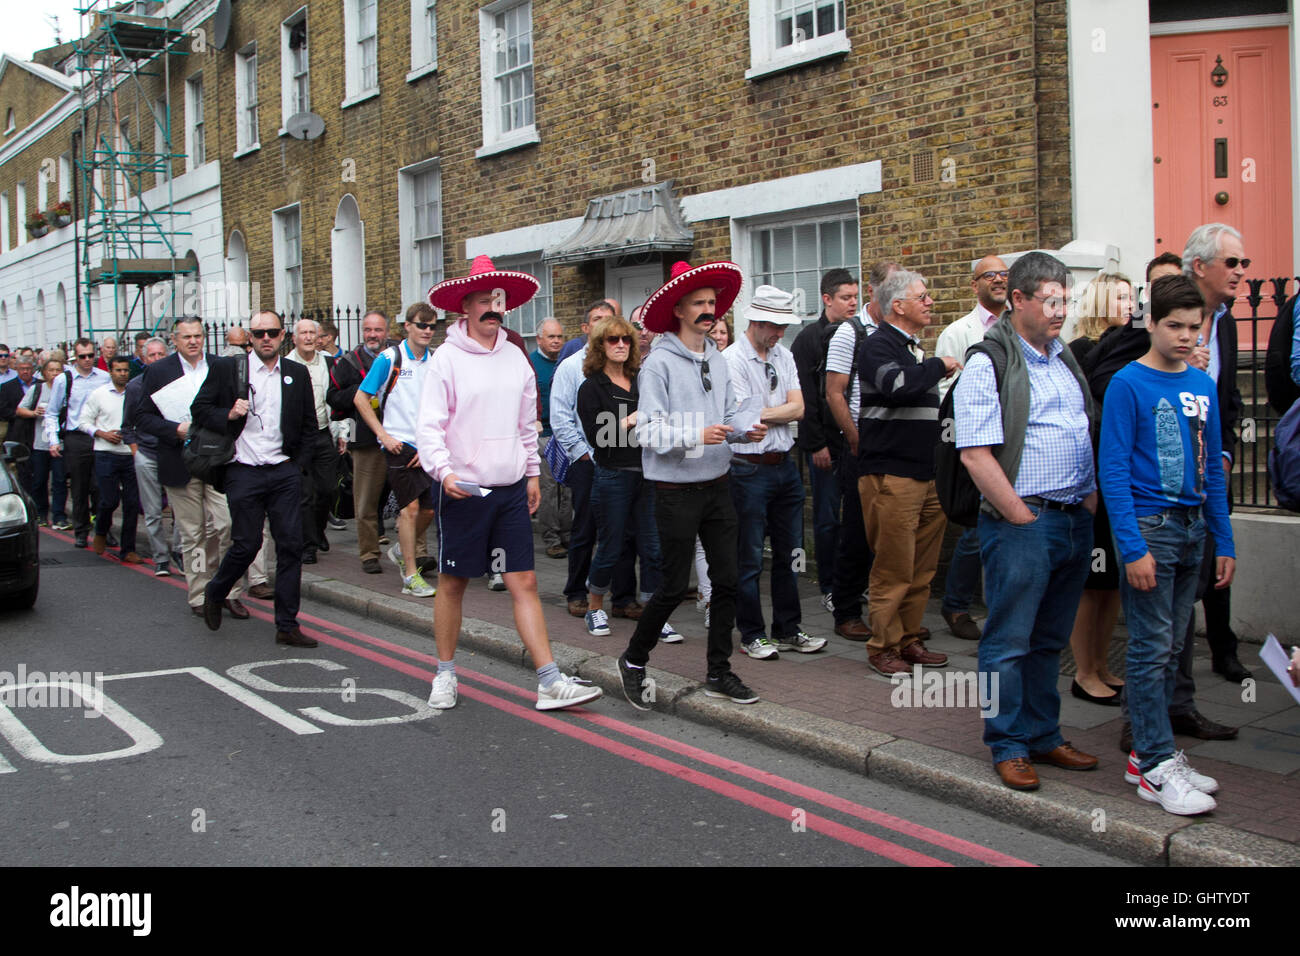 Vauxhall London UK. 11th August 2016. Cricket fans wearing Mexican sombreros arrive for the fourth test match between Stock Photo